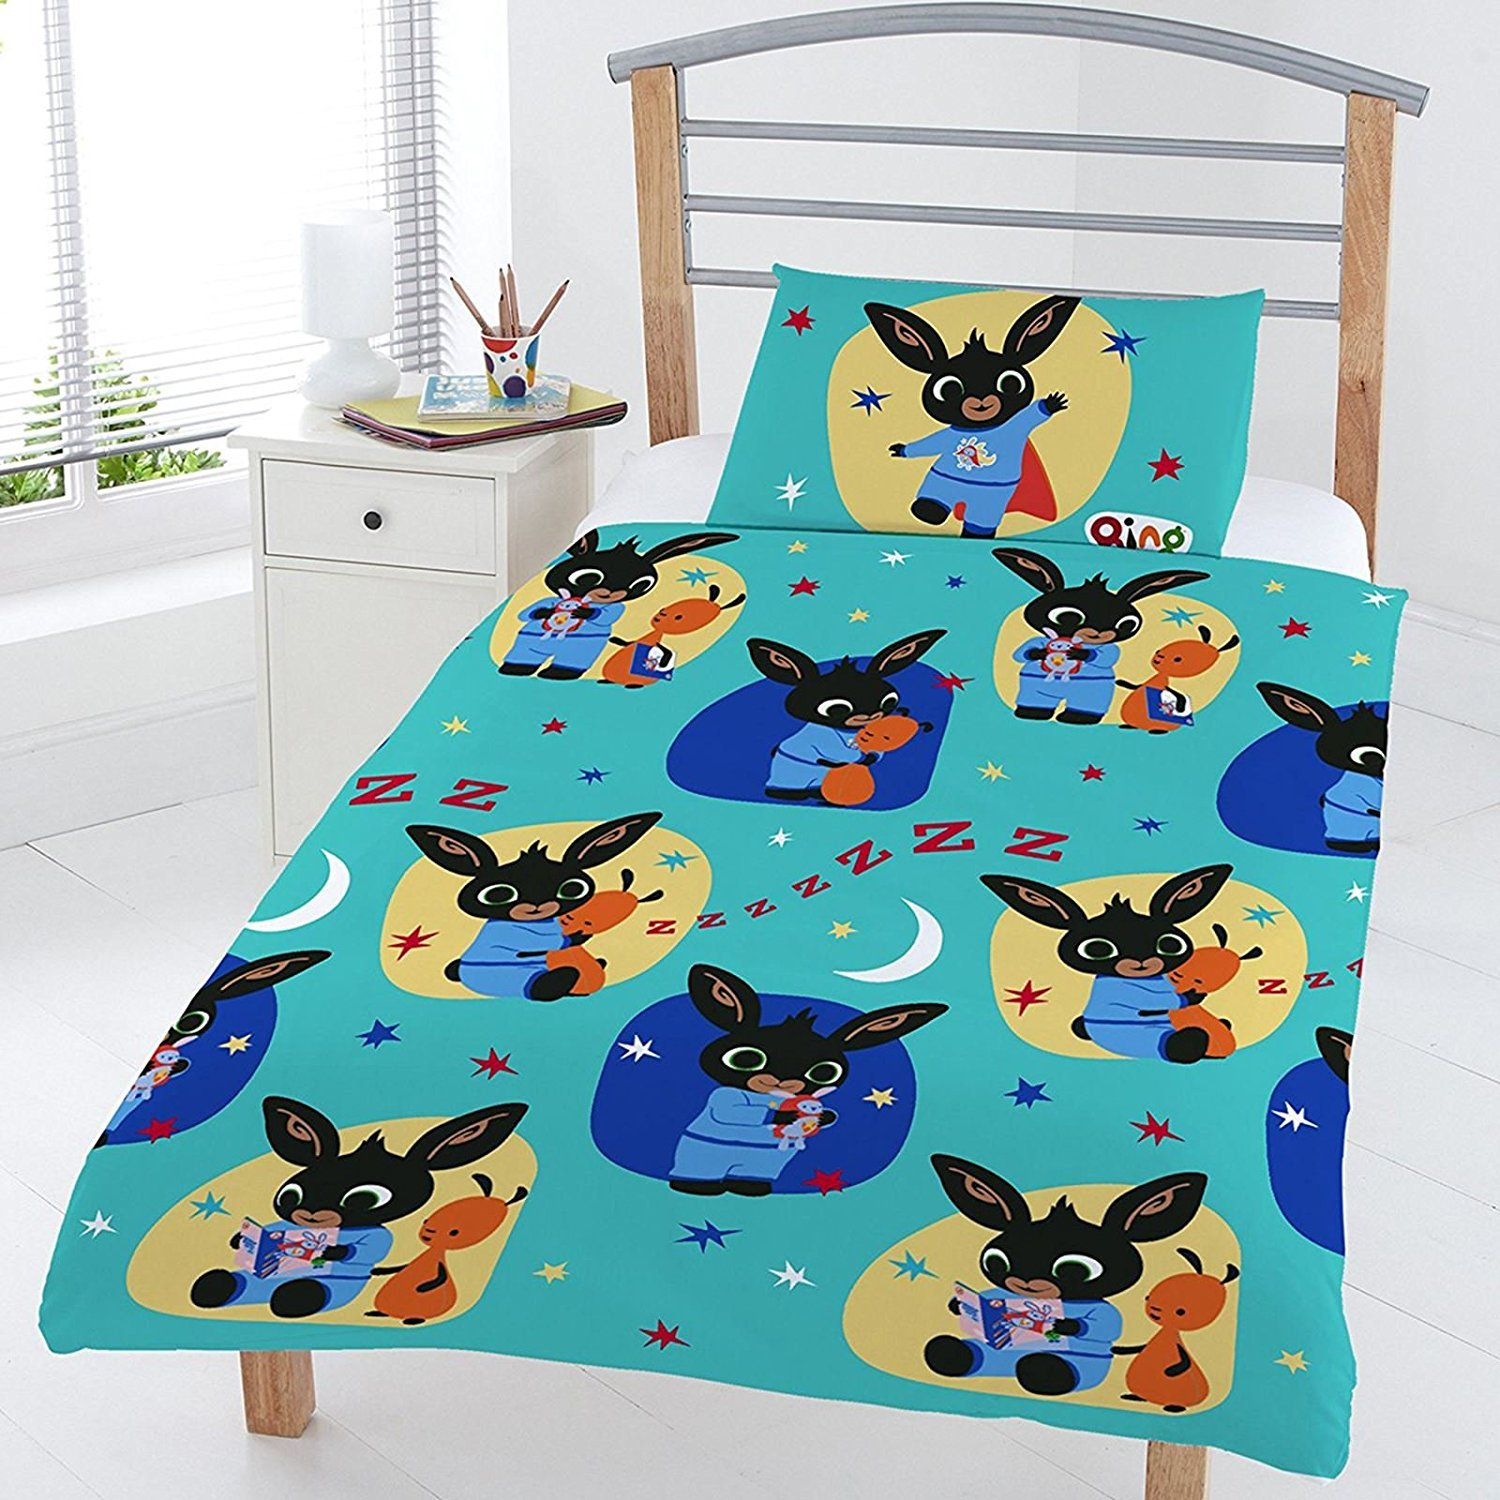 Bing Bunny Bedtime Junior Duvet Set, Polyester-Cotton, Multi, Full Dreamtex Ltd JR1-BIN-BED-12